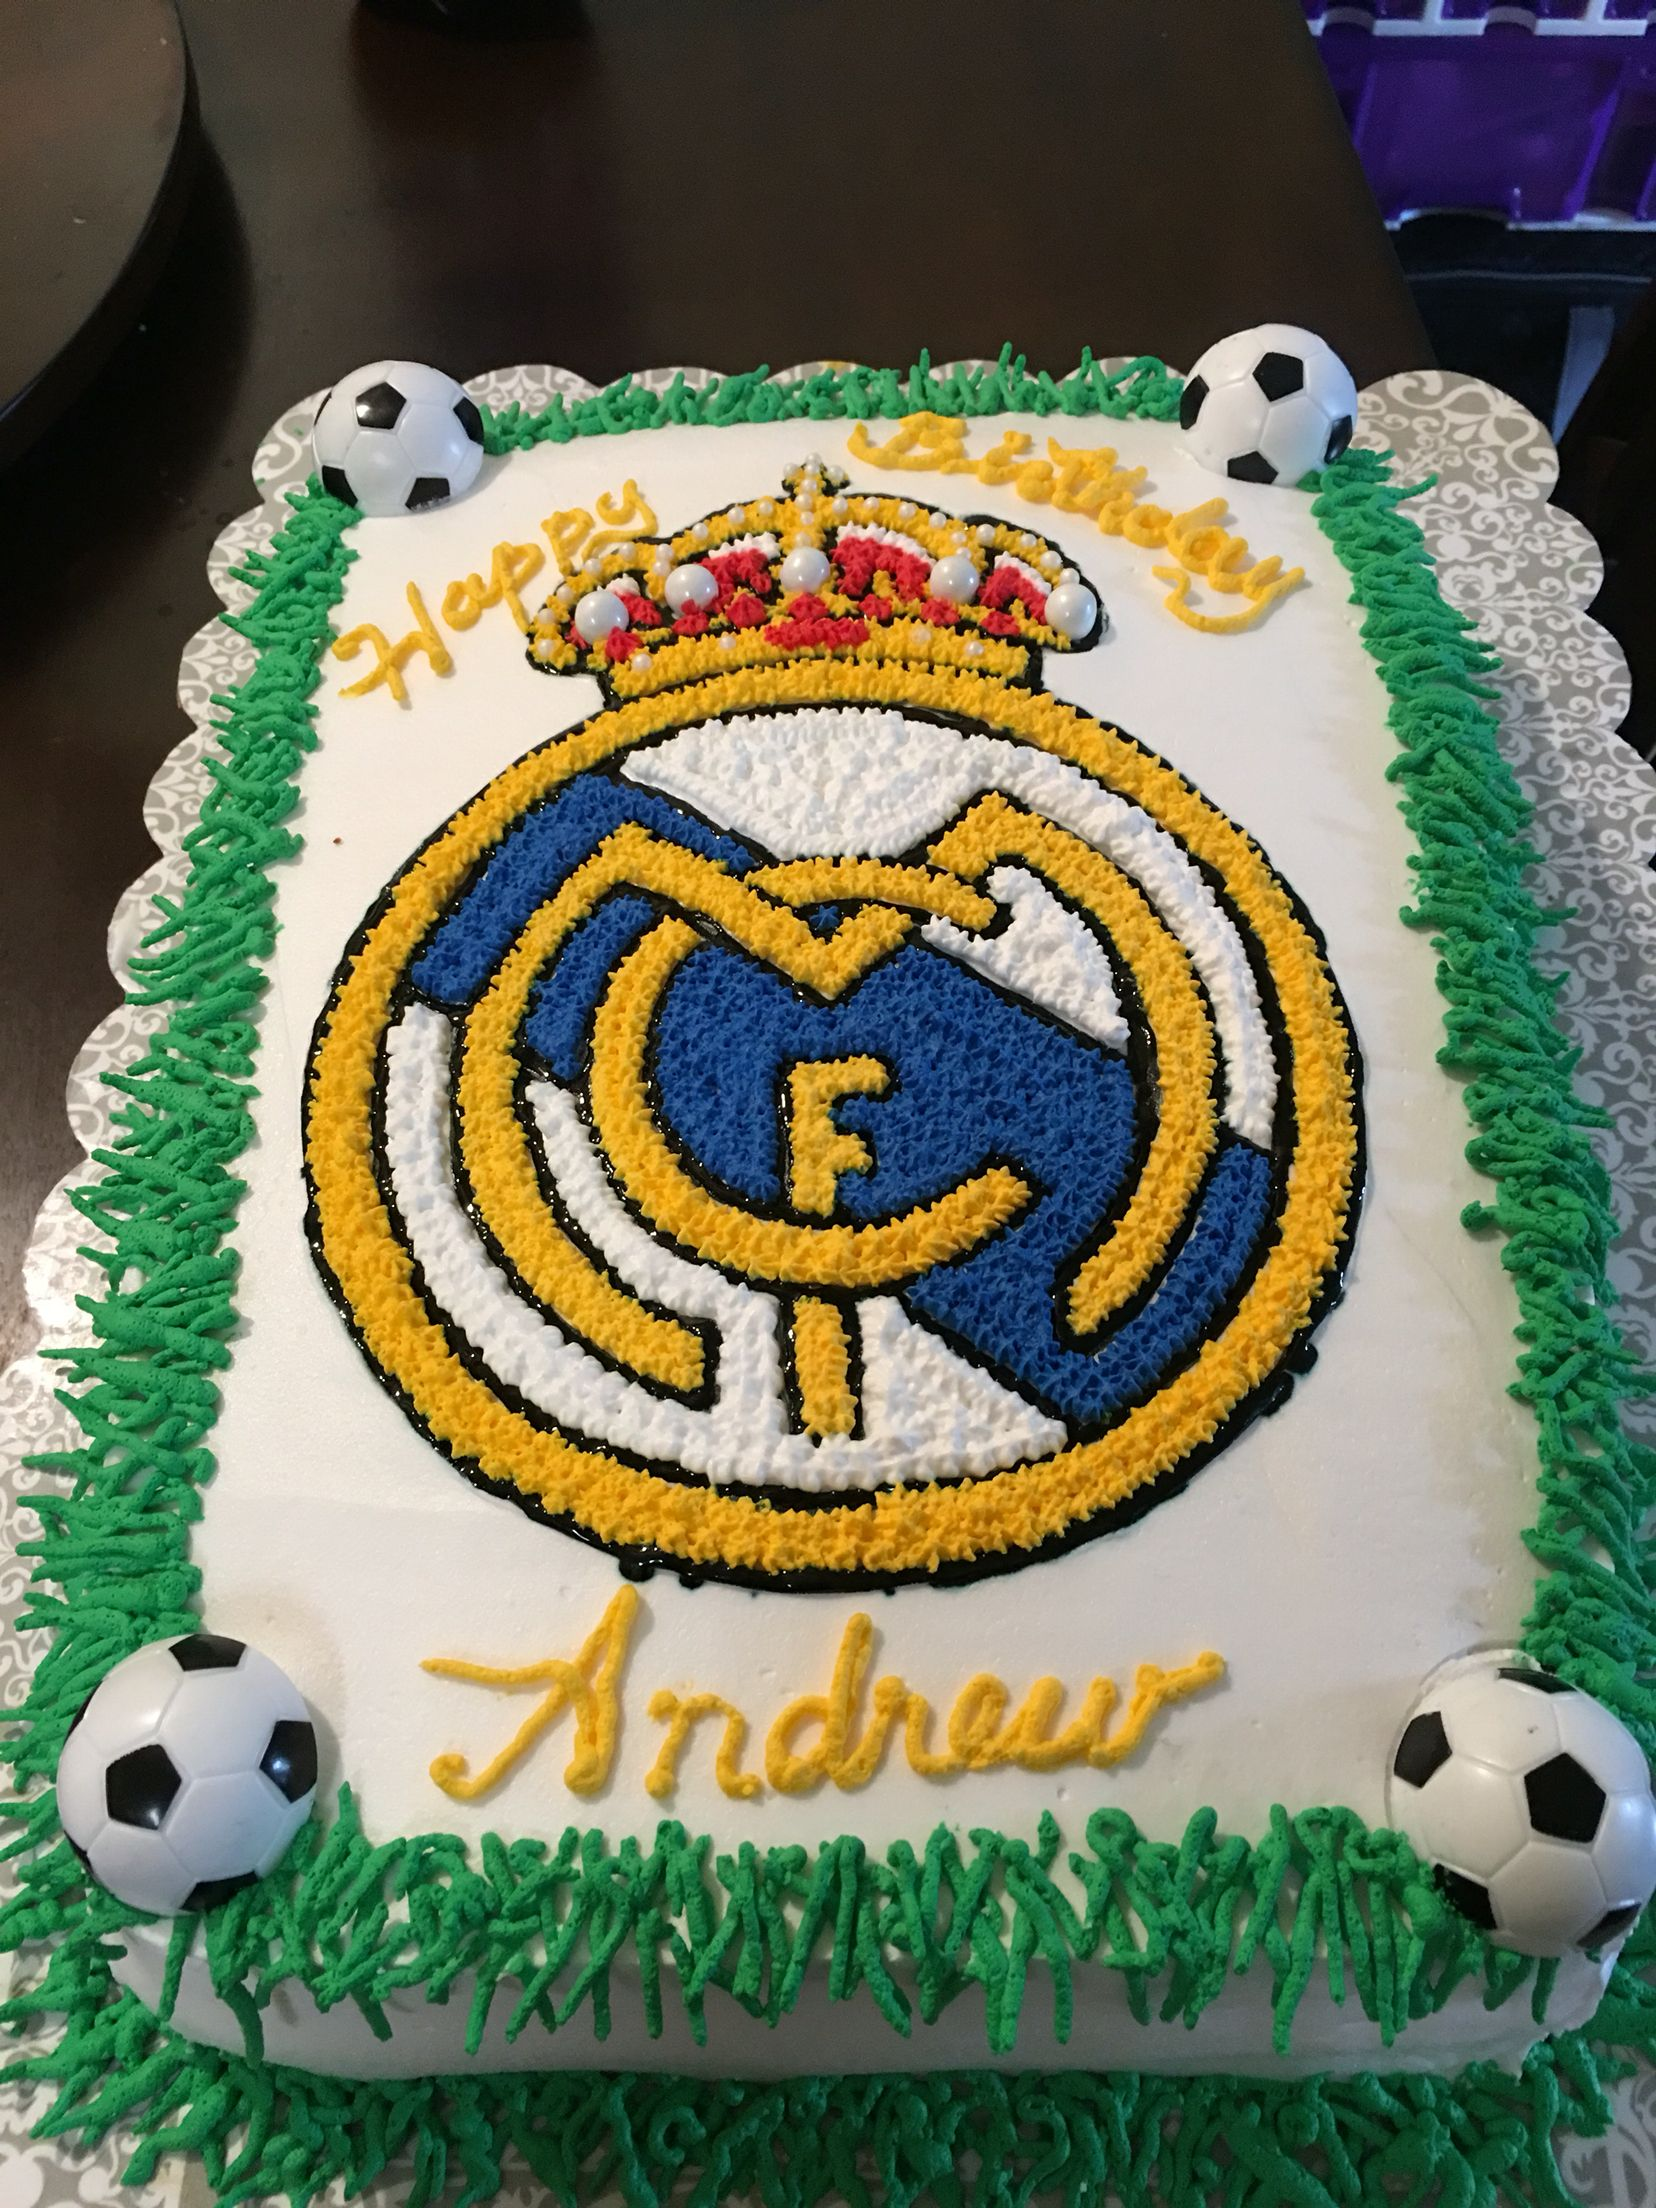 Real madrid cake tortas pinterest real madrid fondant y madrid real madrid cake altavistaventures Images